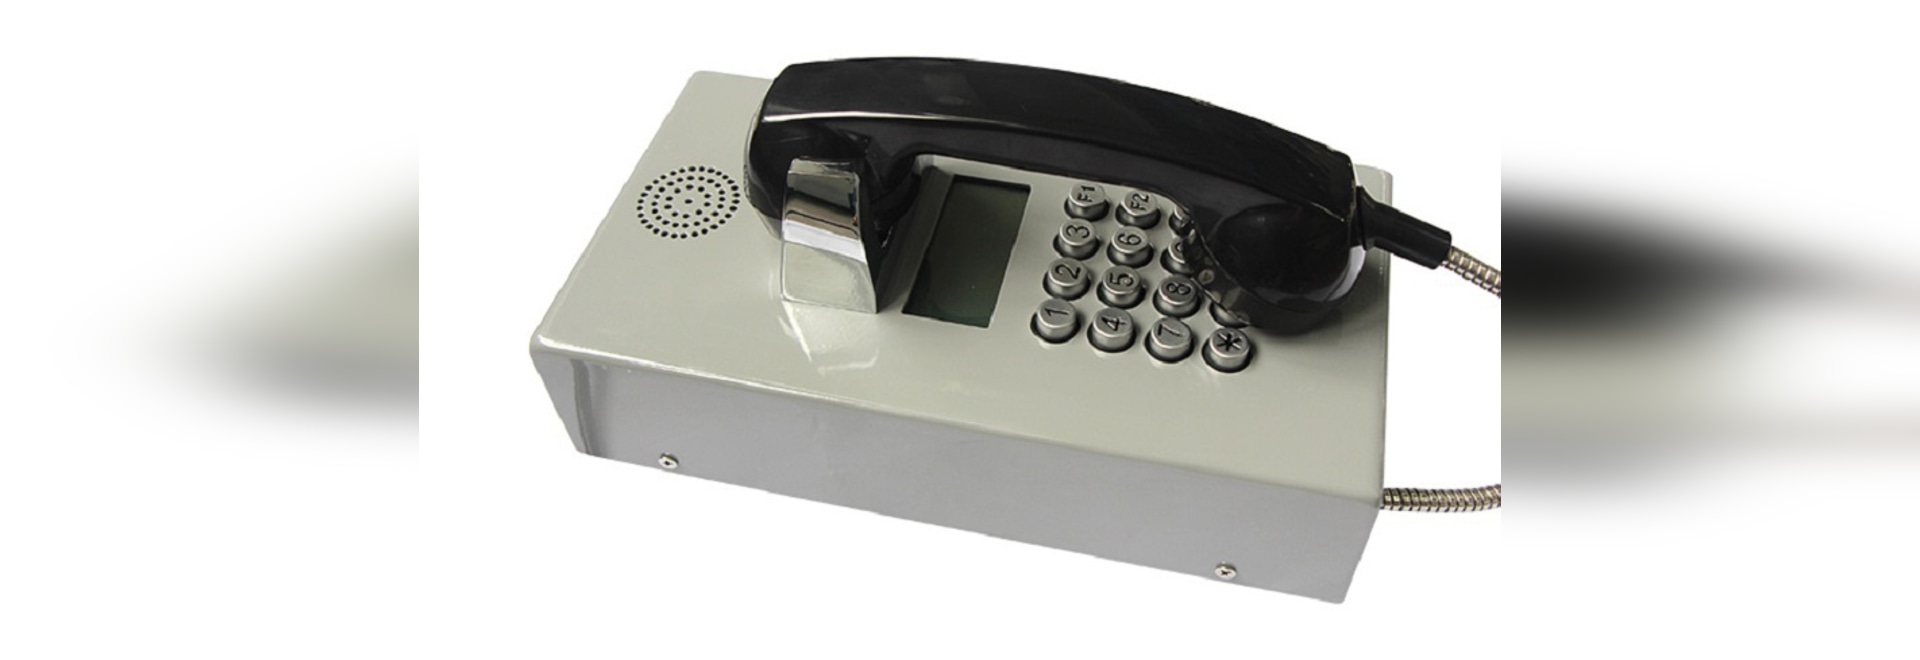 New VOIP telephone with LCD display